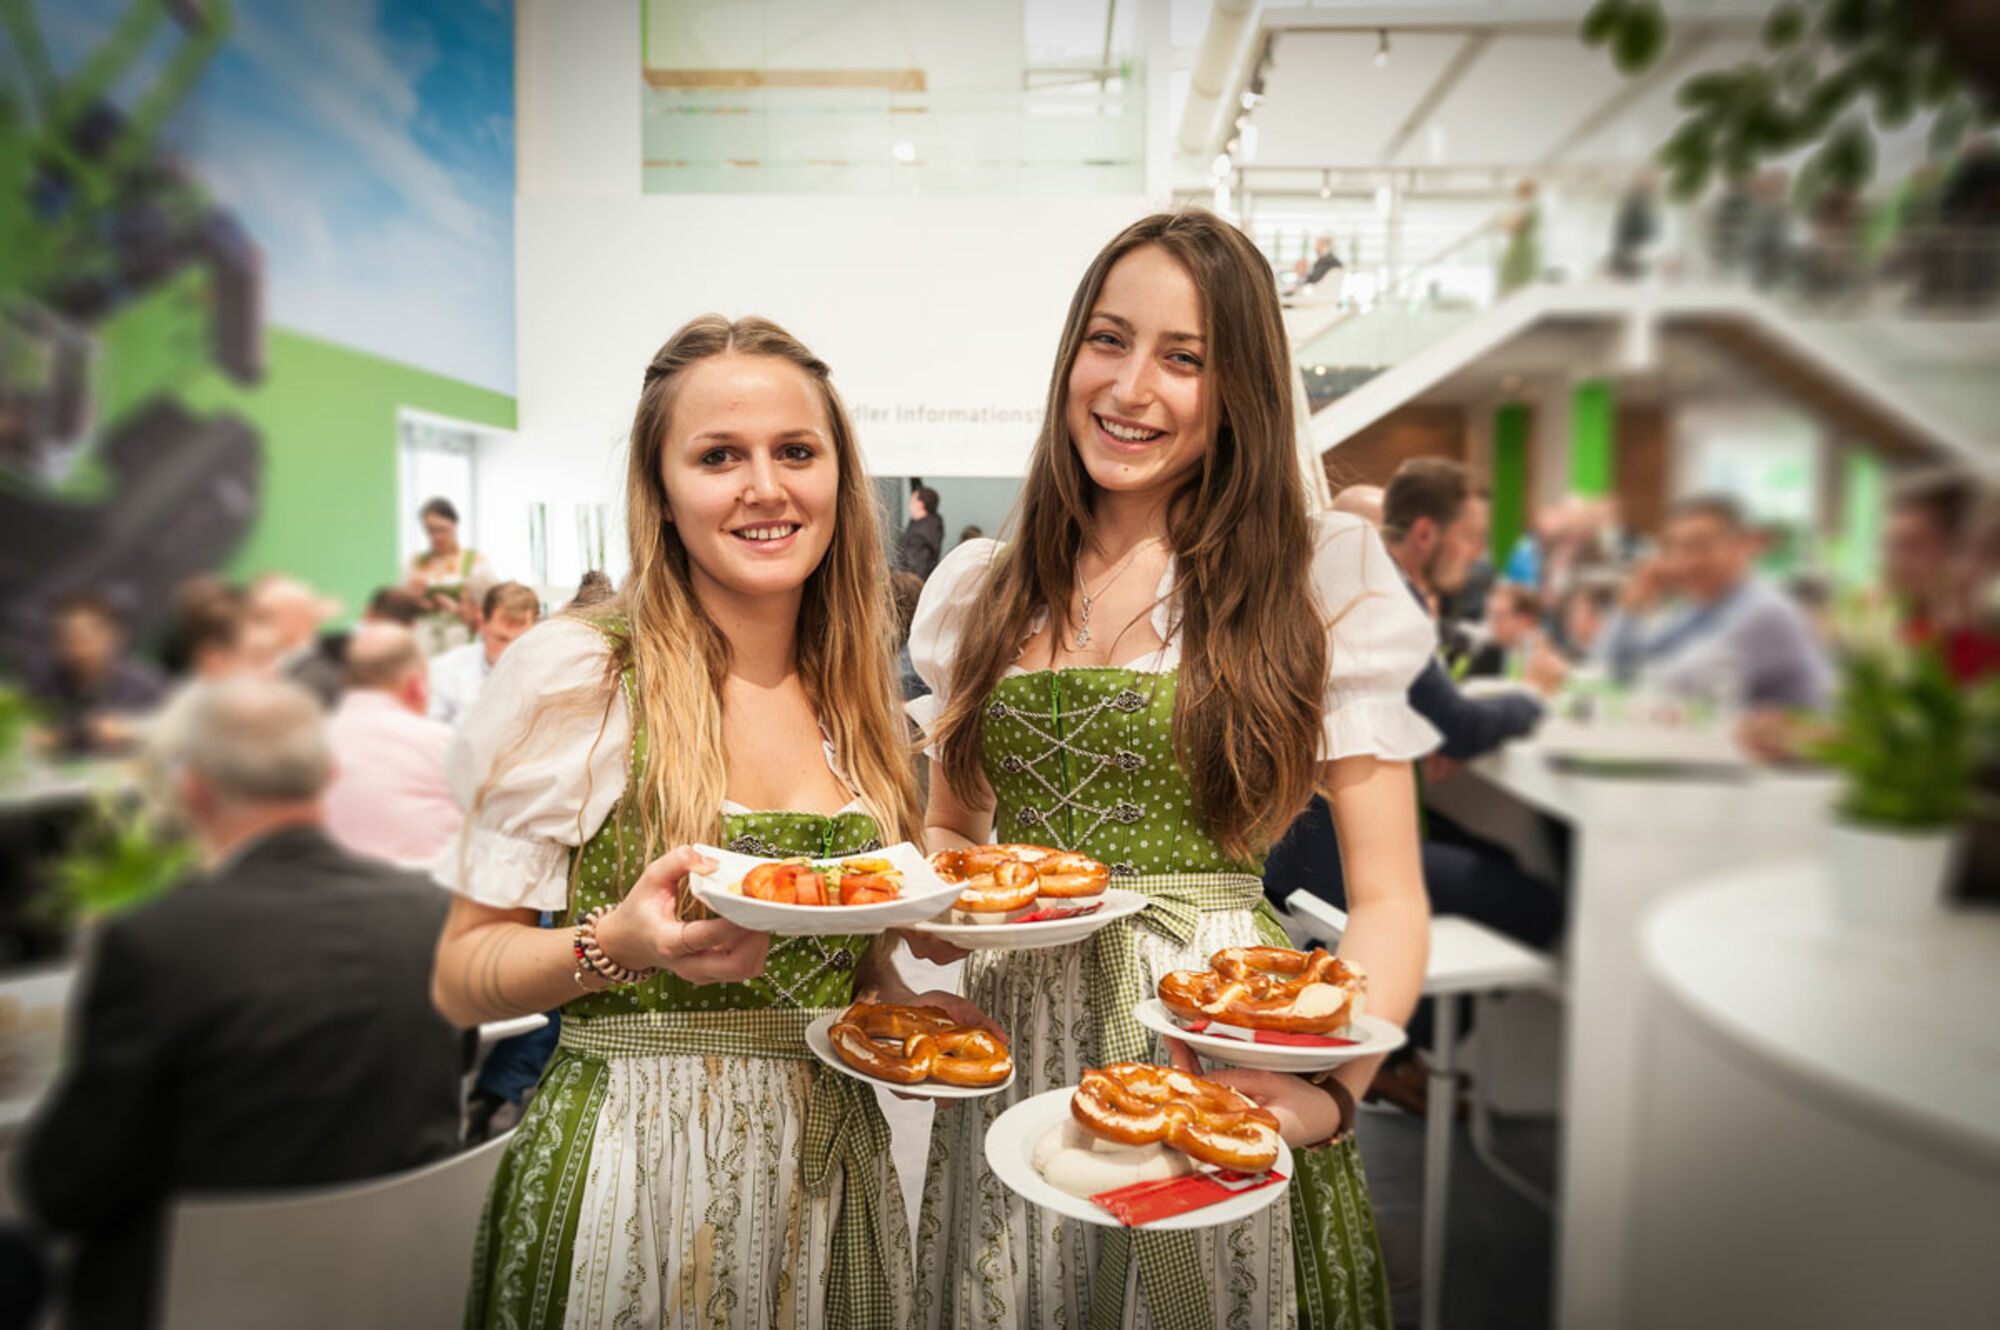 [Translate to English:] Catering am Messestand